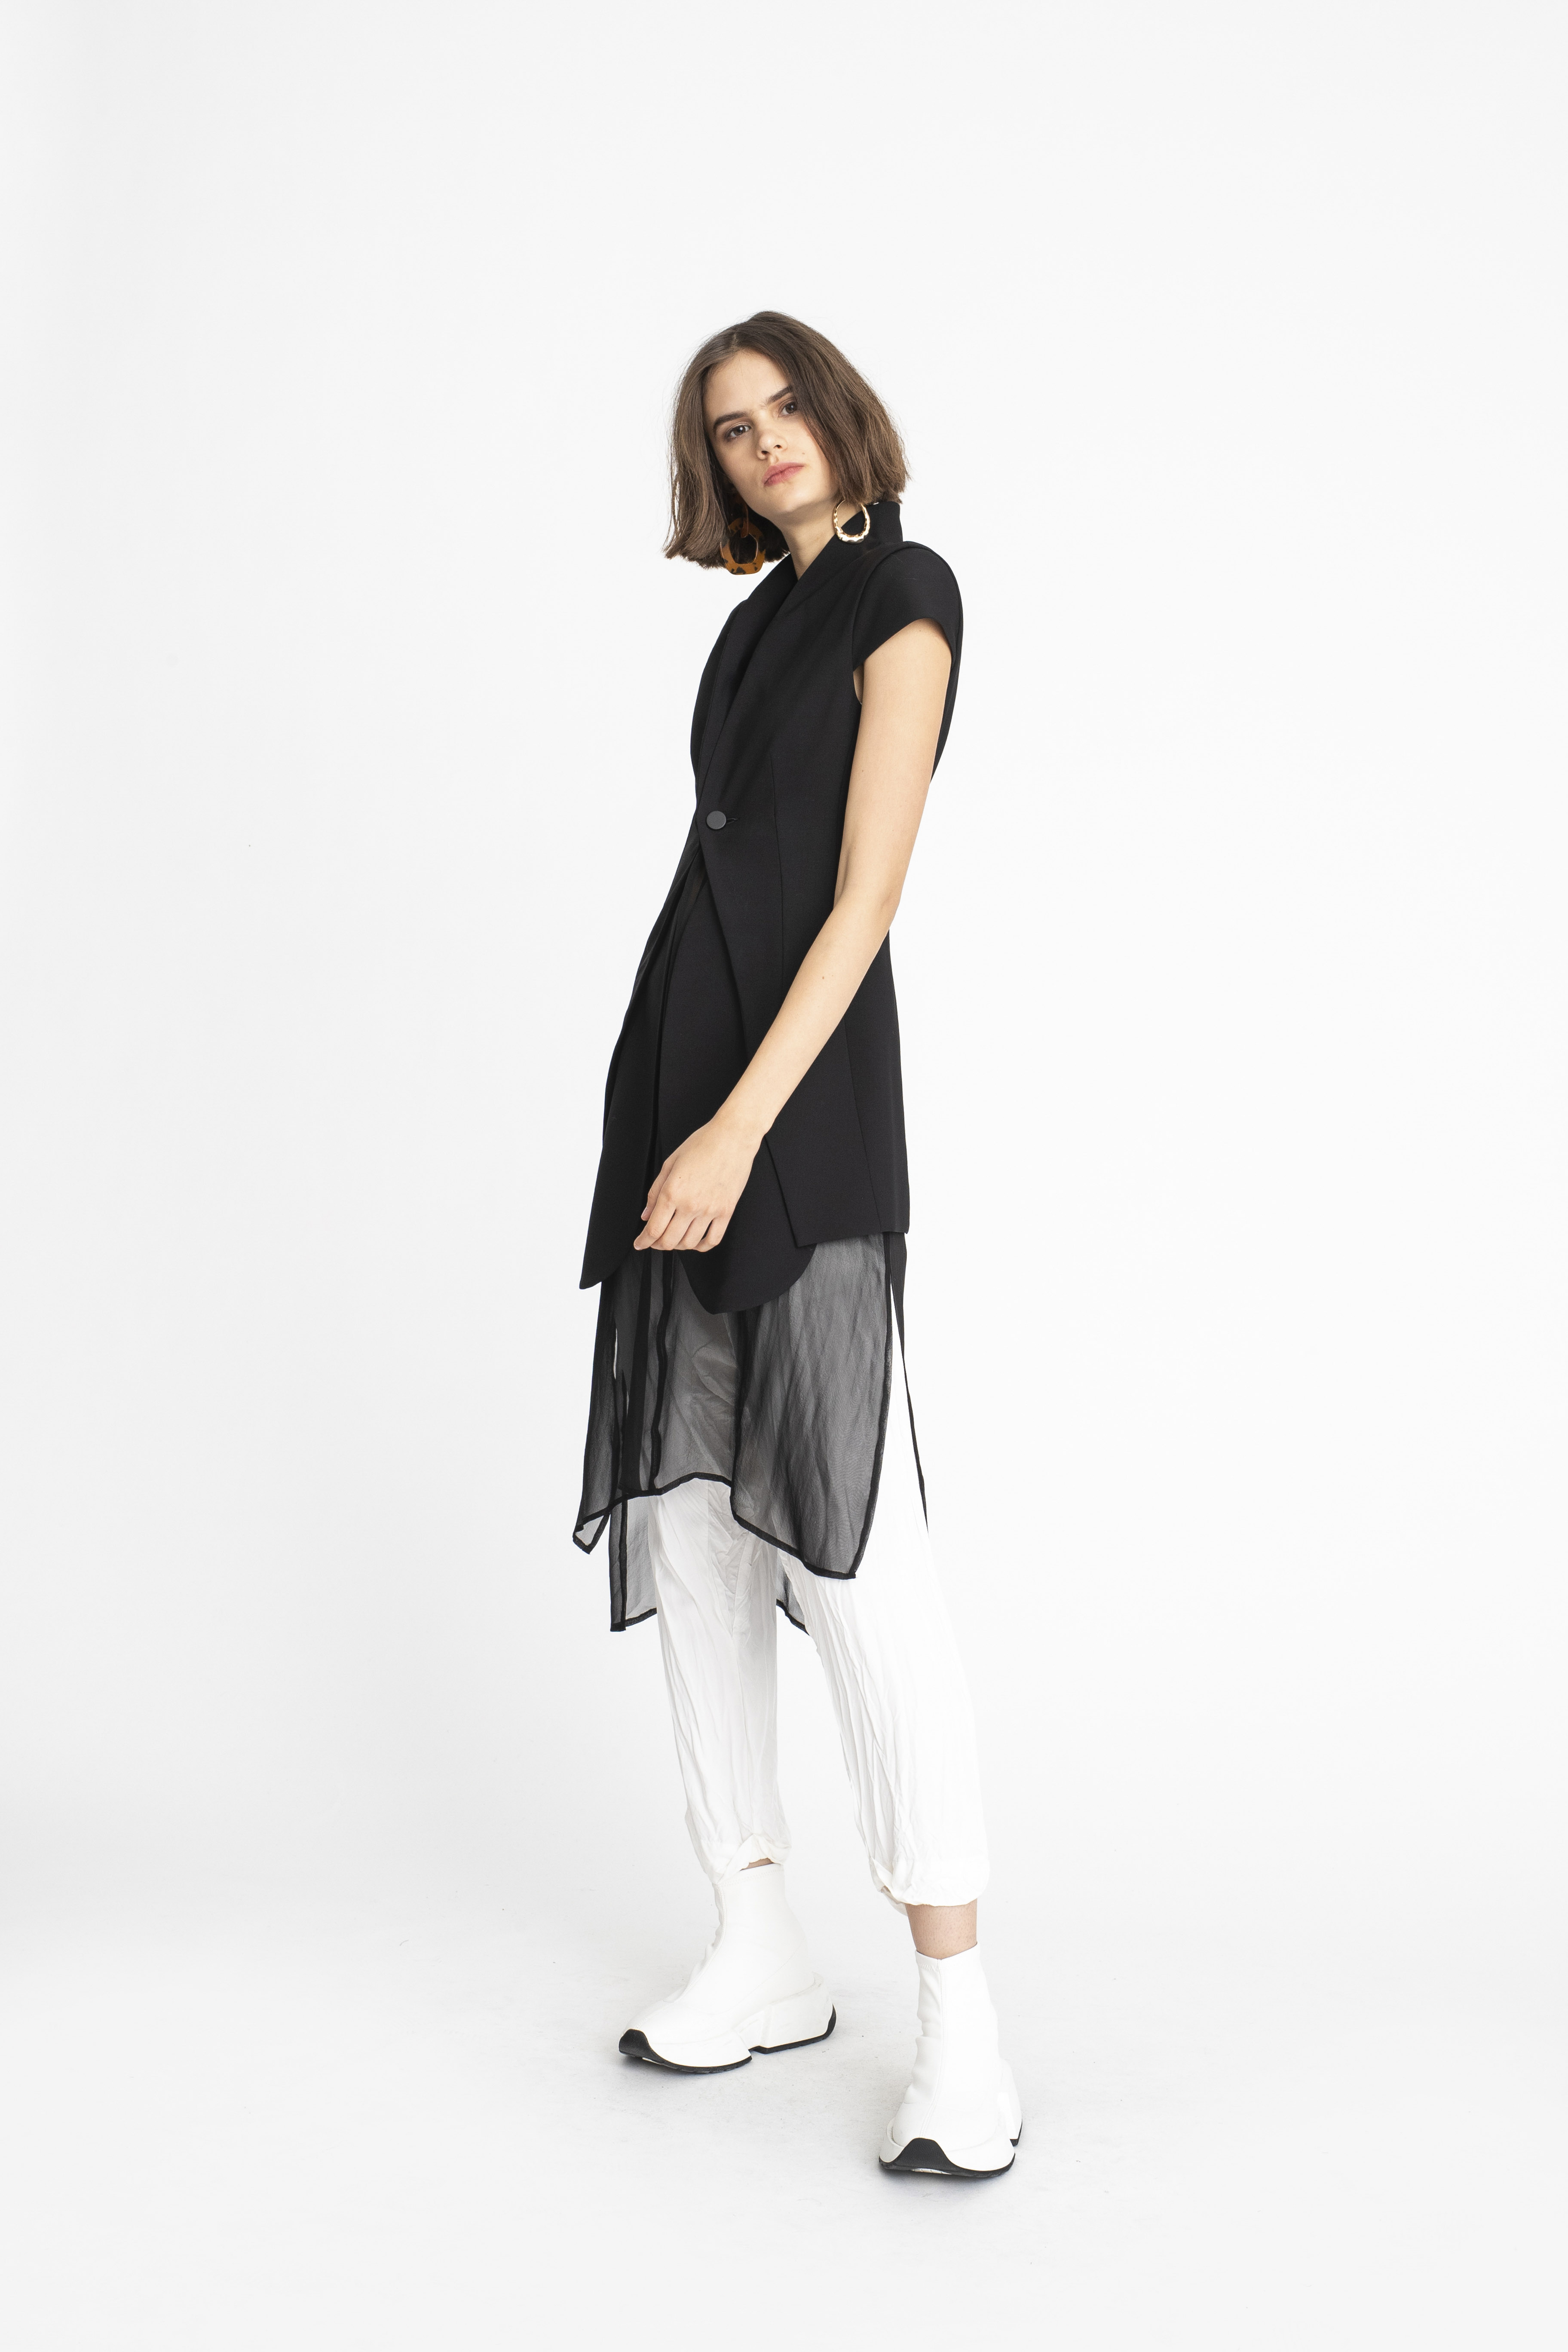 Echo-Vest_Swivel-Tunic_Panelled-Relief-Pant_TaylorBoutique_AW19_L125_2741 2